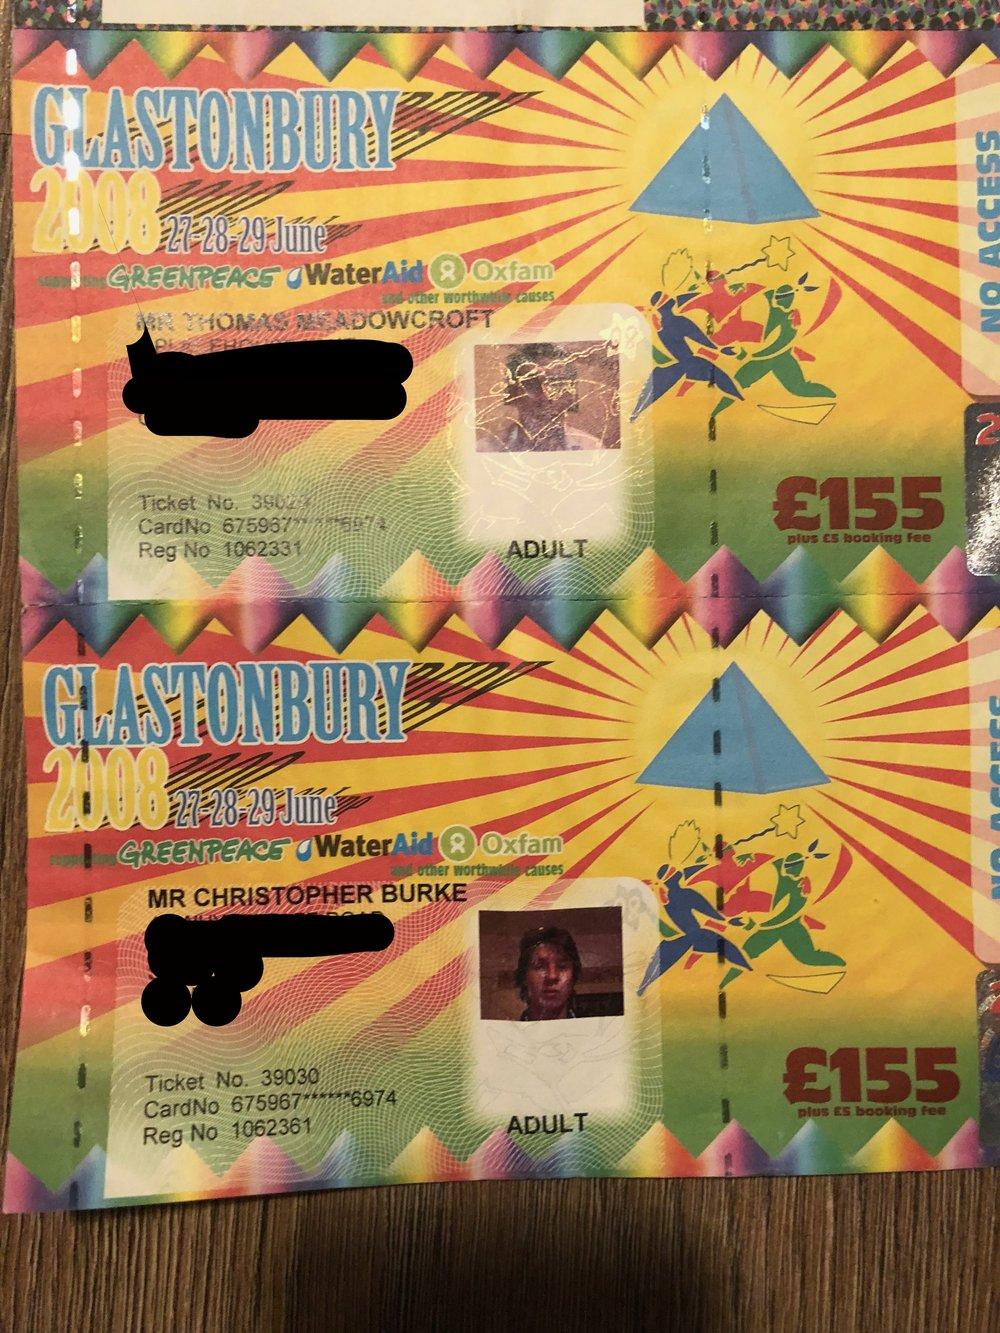 Glasto 2008 ticket.jpg